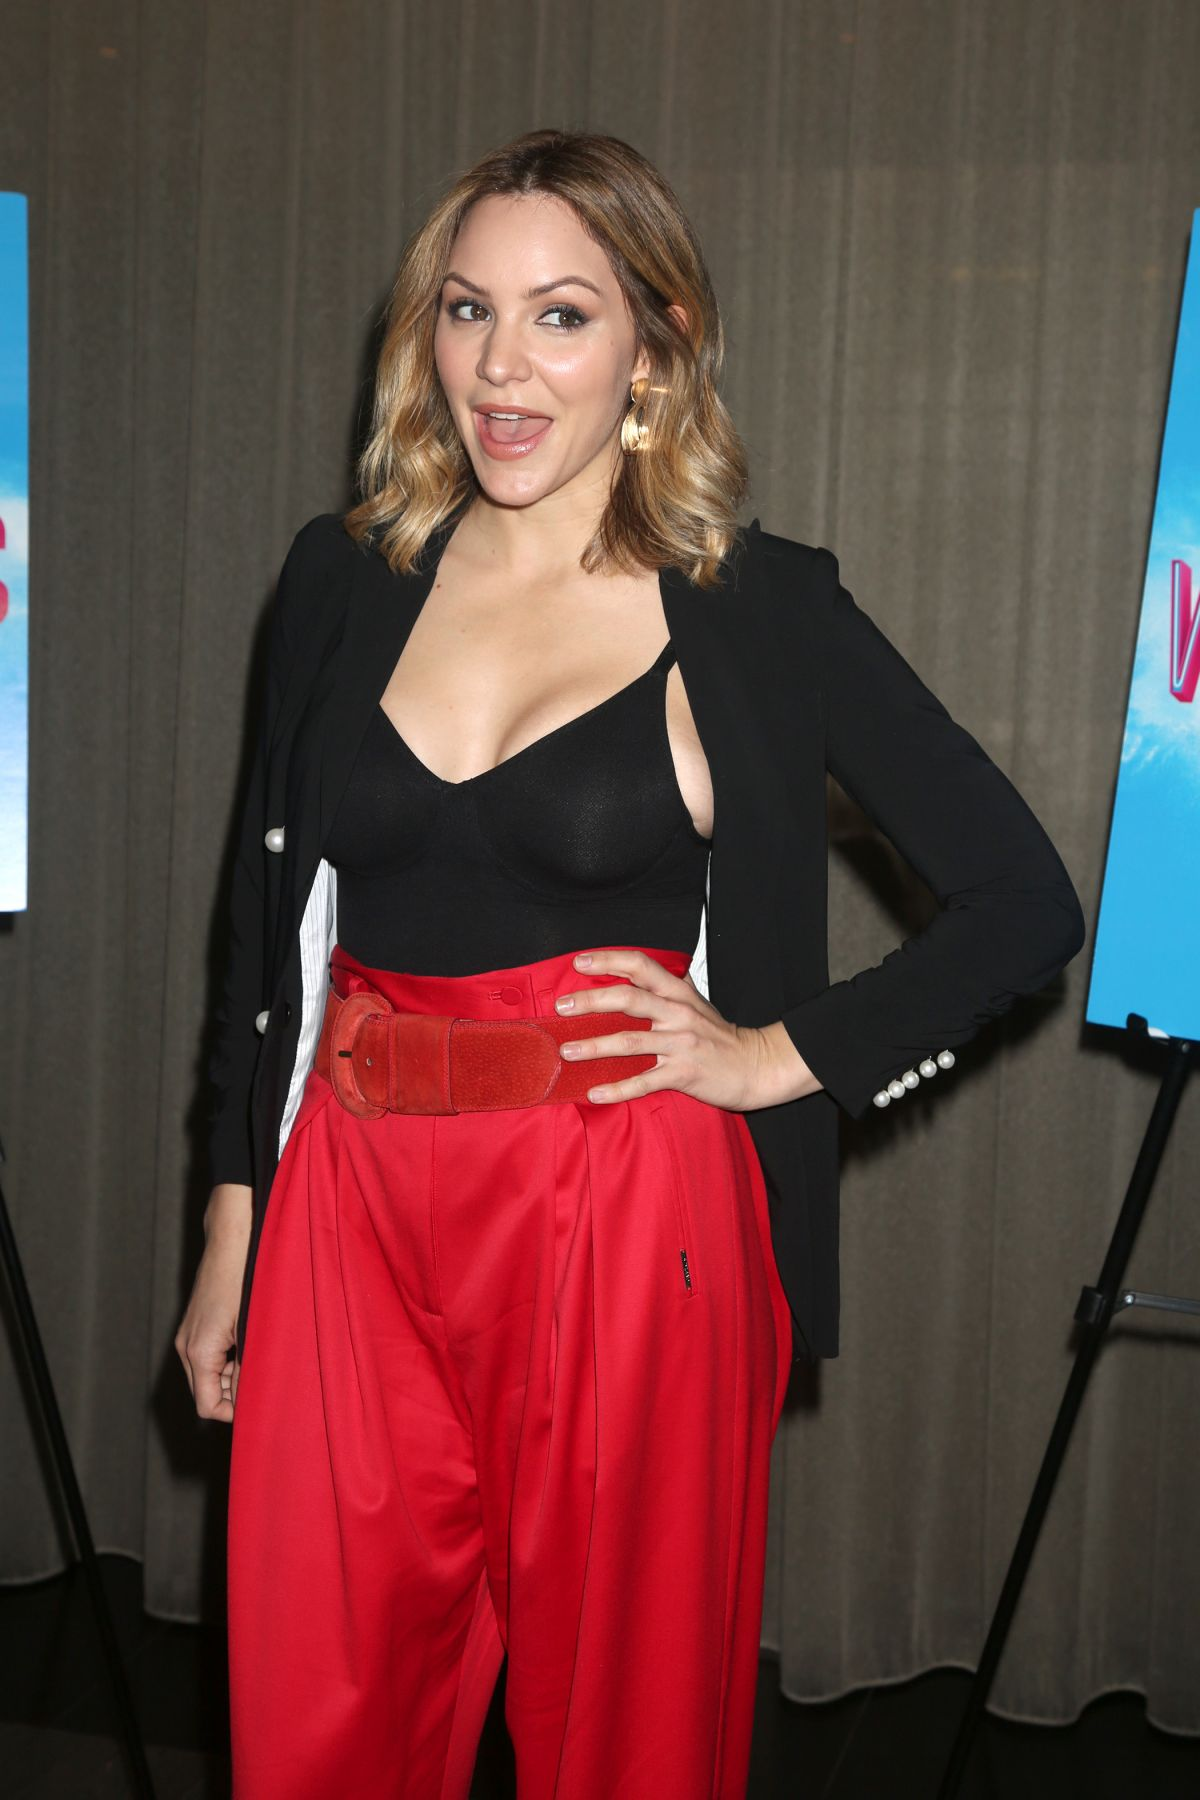 Katharine Mcphee At Waitress The Musical Photocall In New York 03 29 2018 Hawtcelebs